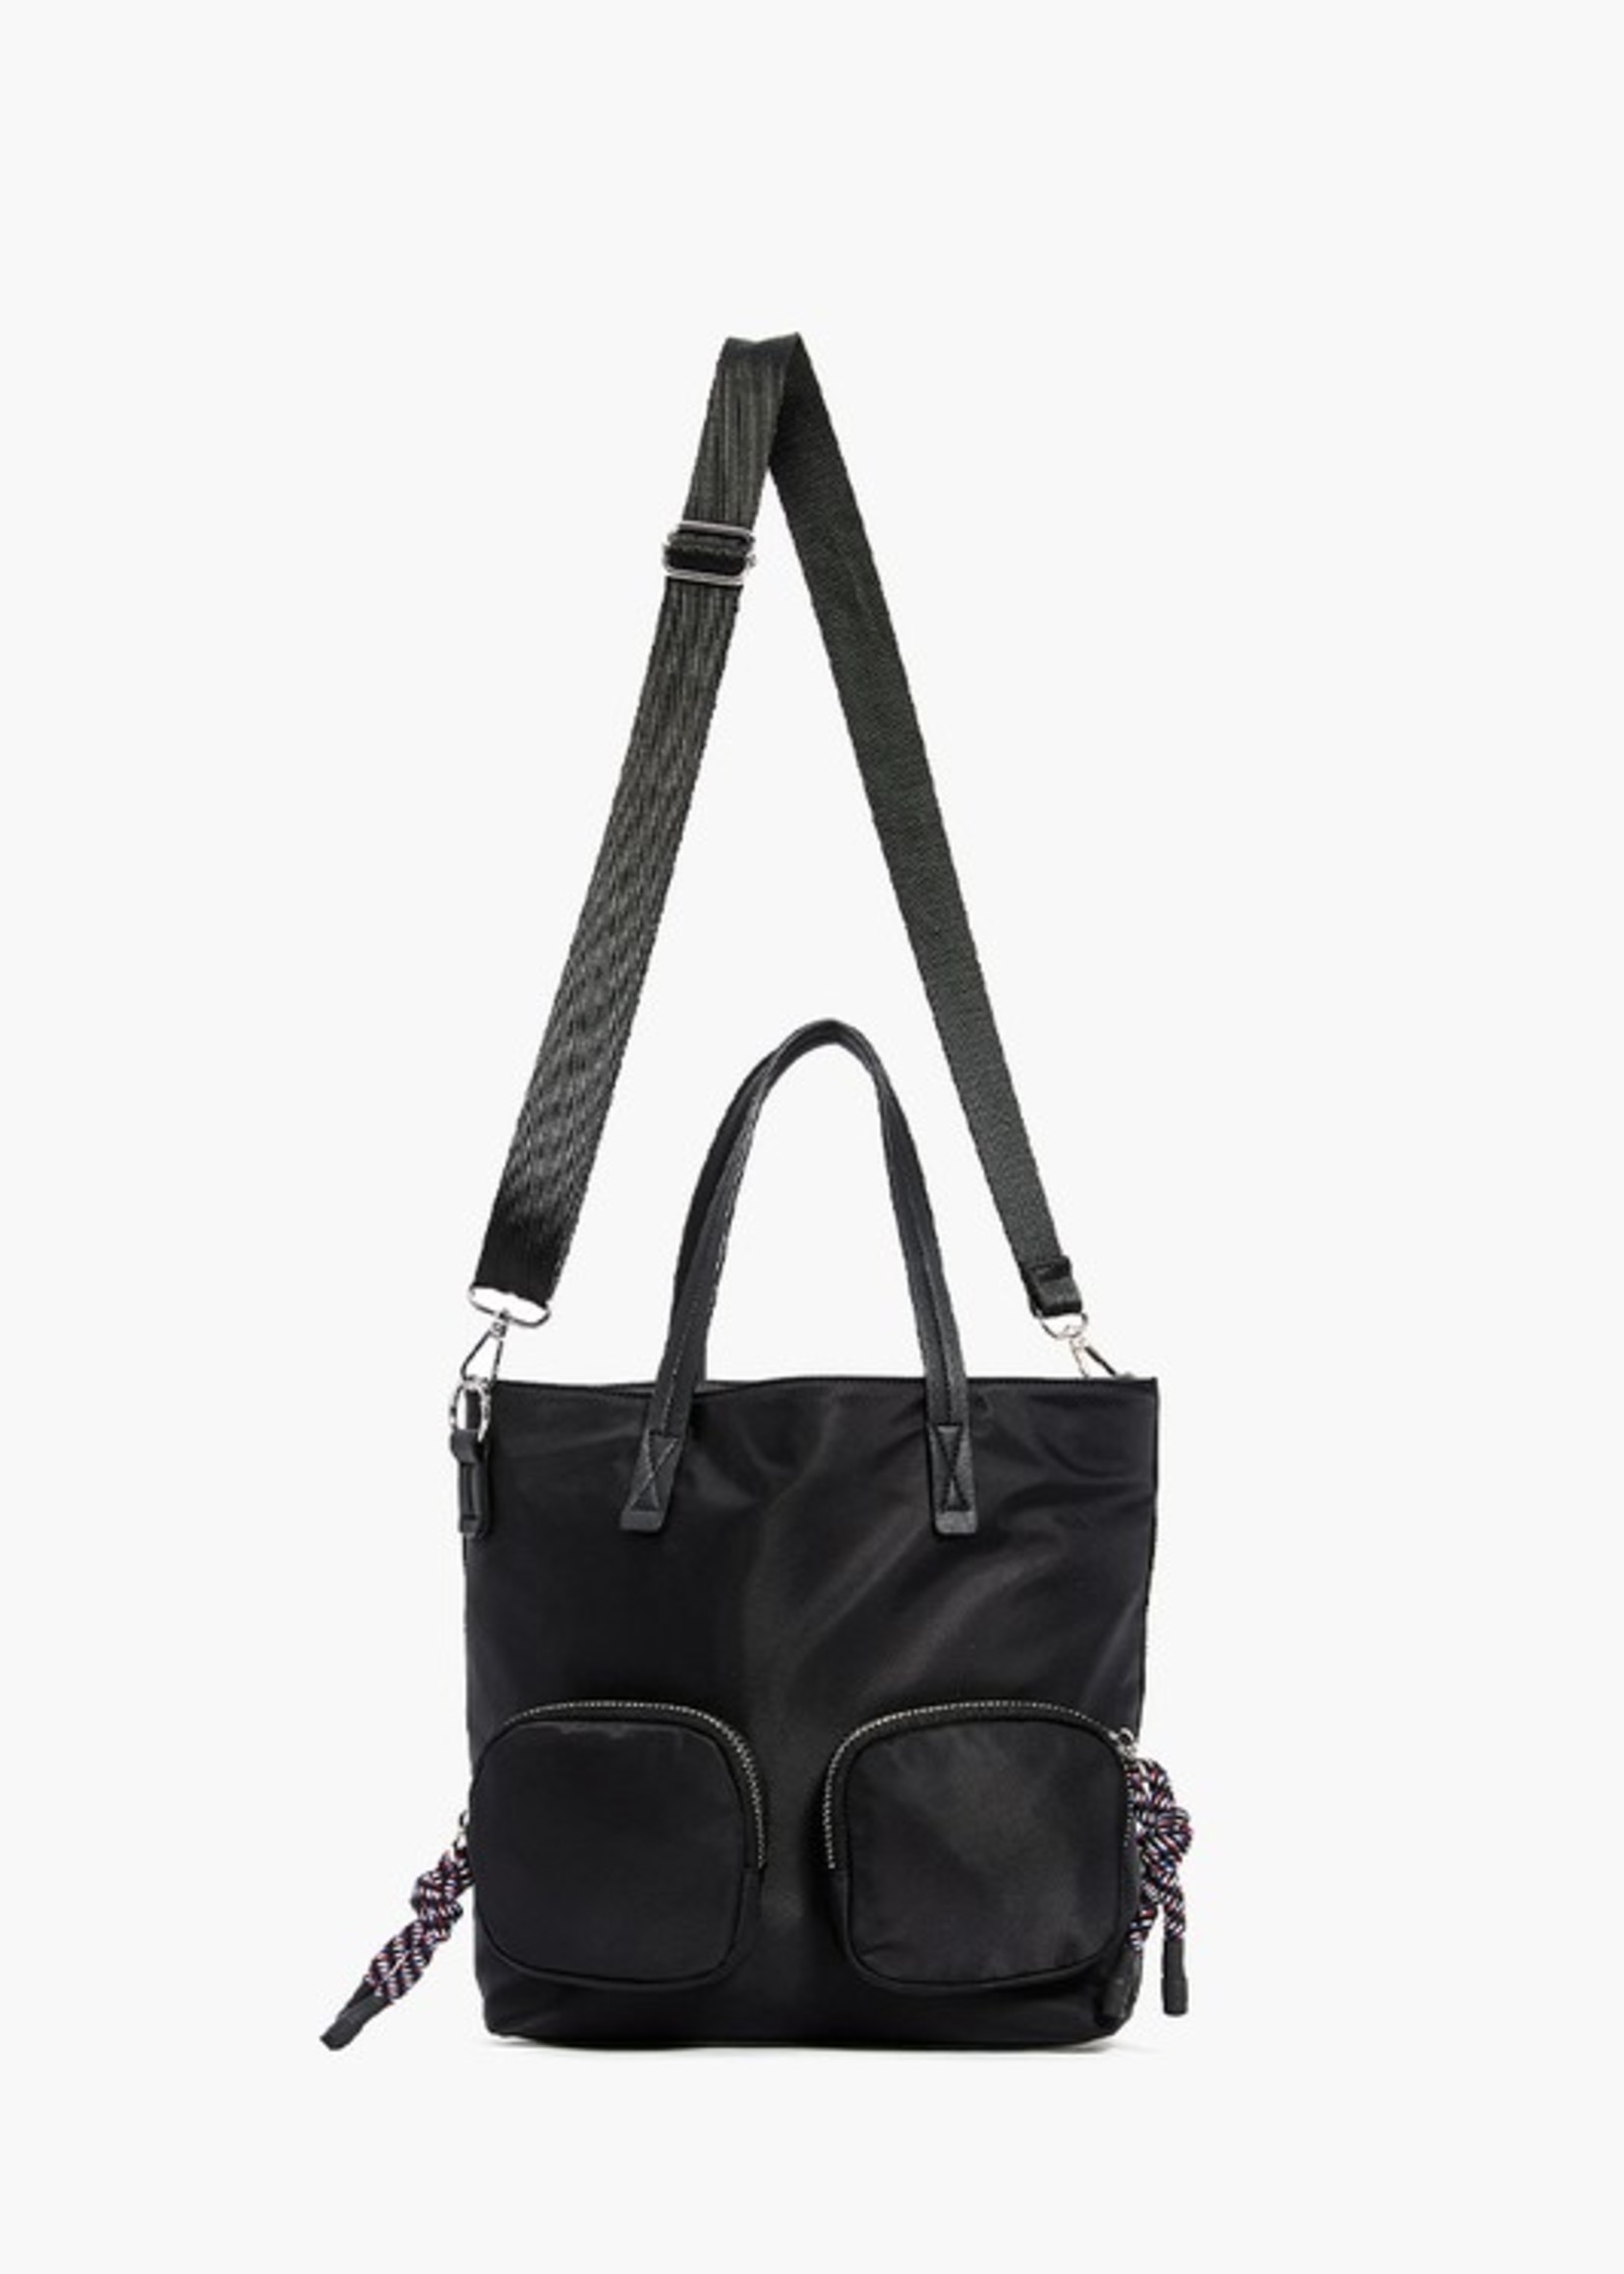 Tote with front pockets